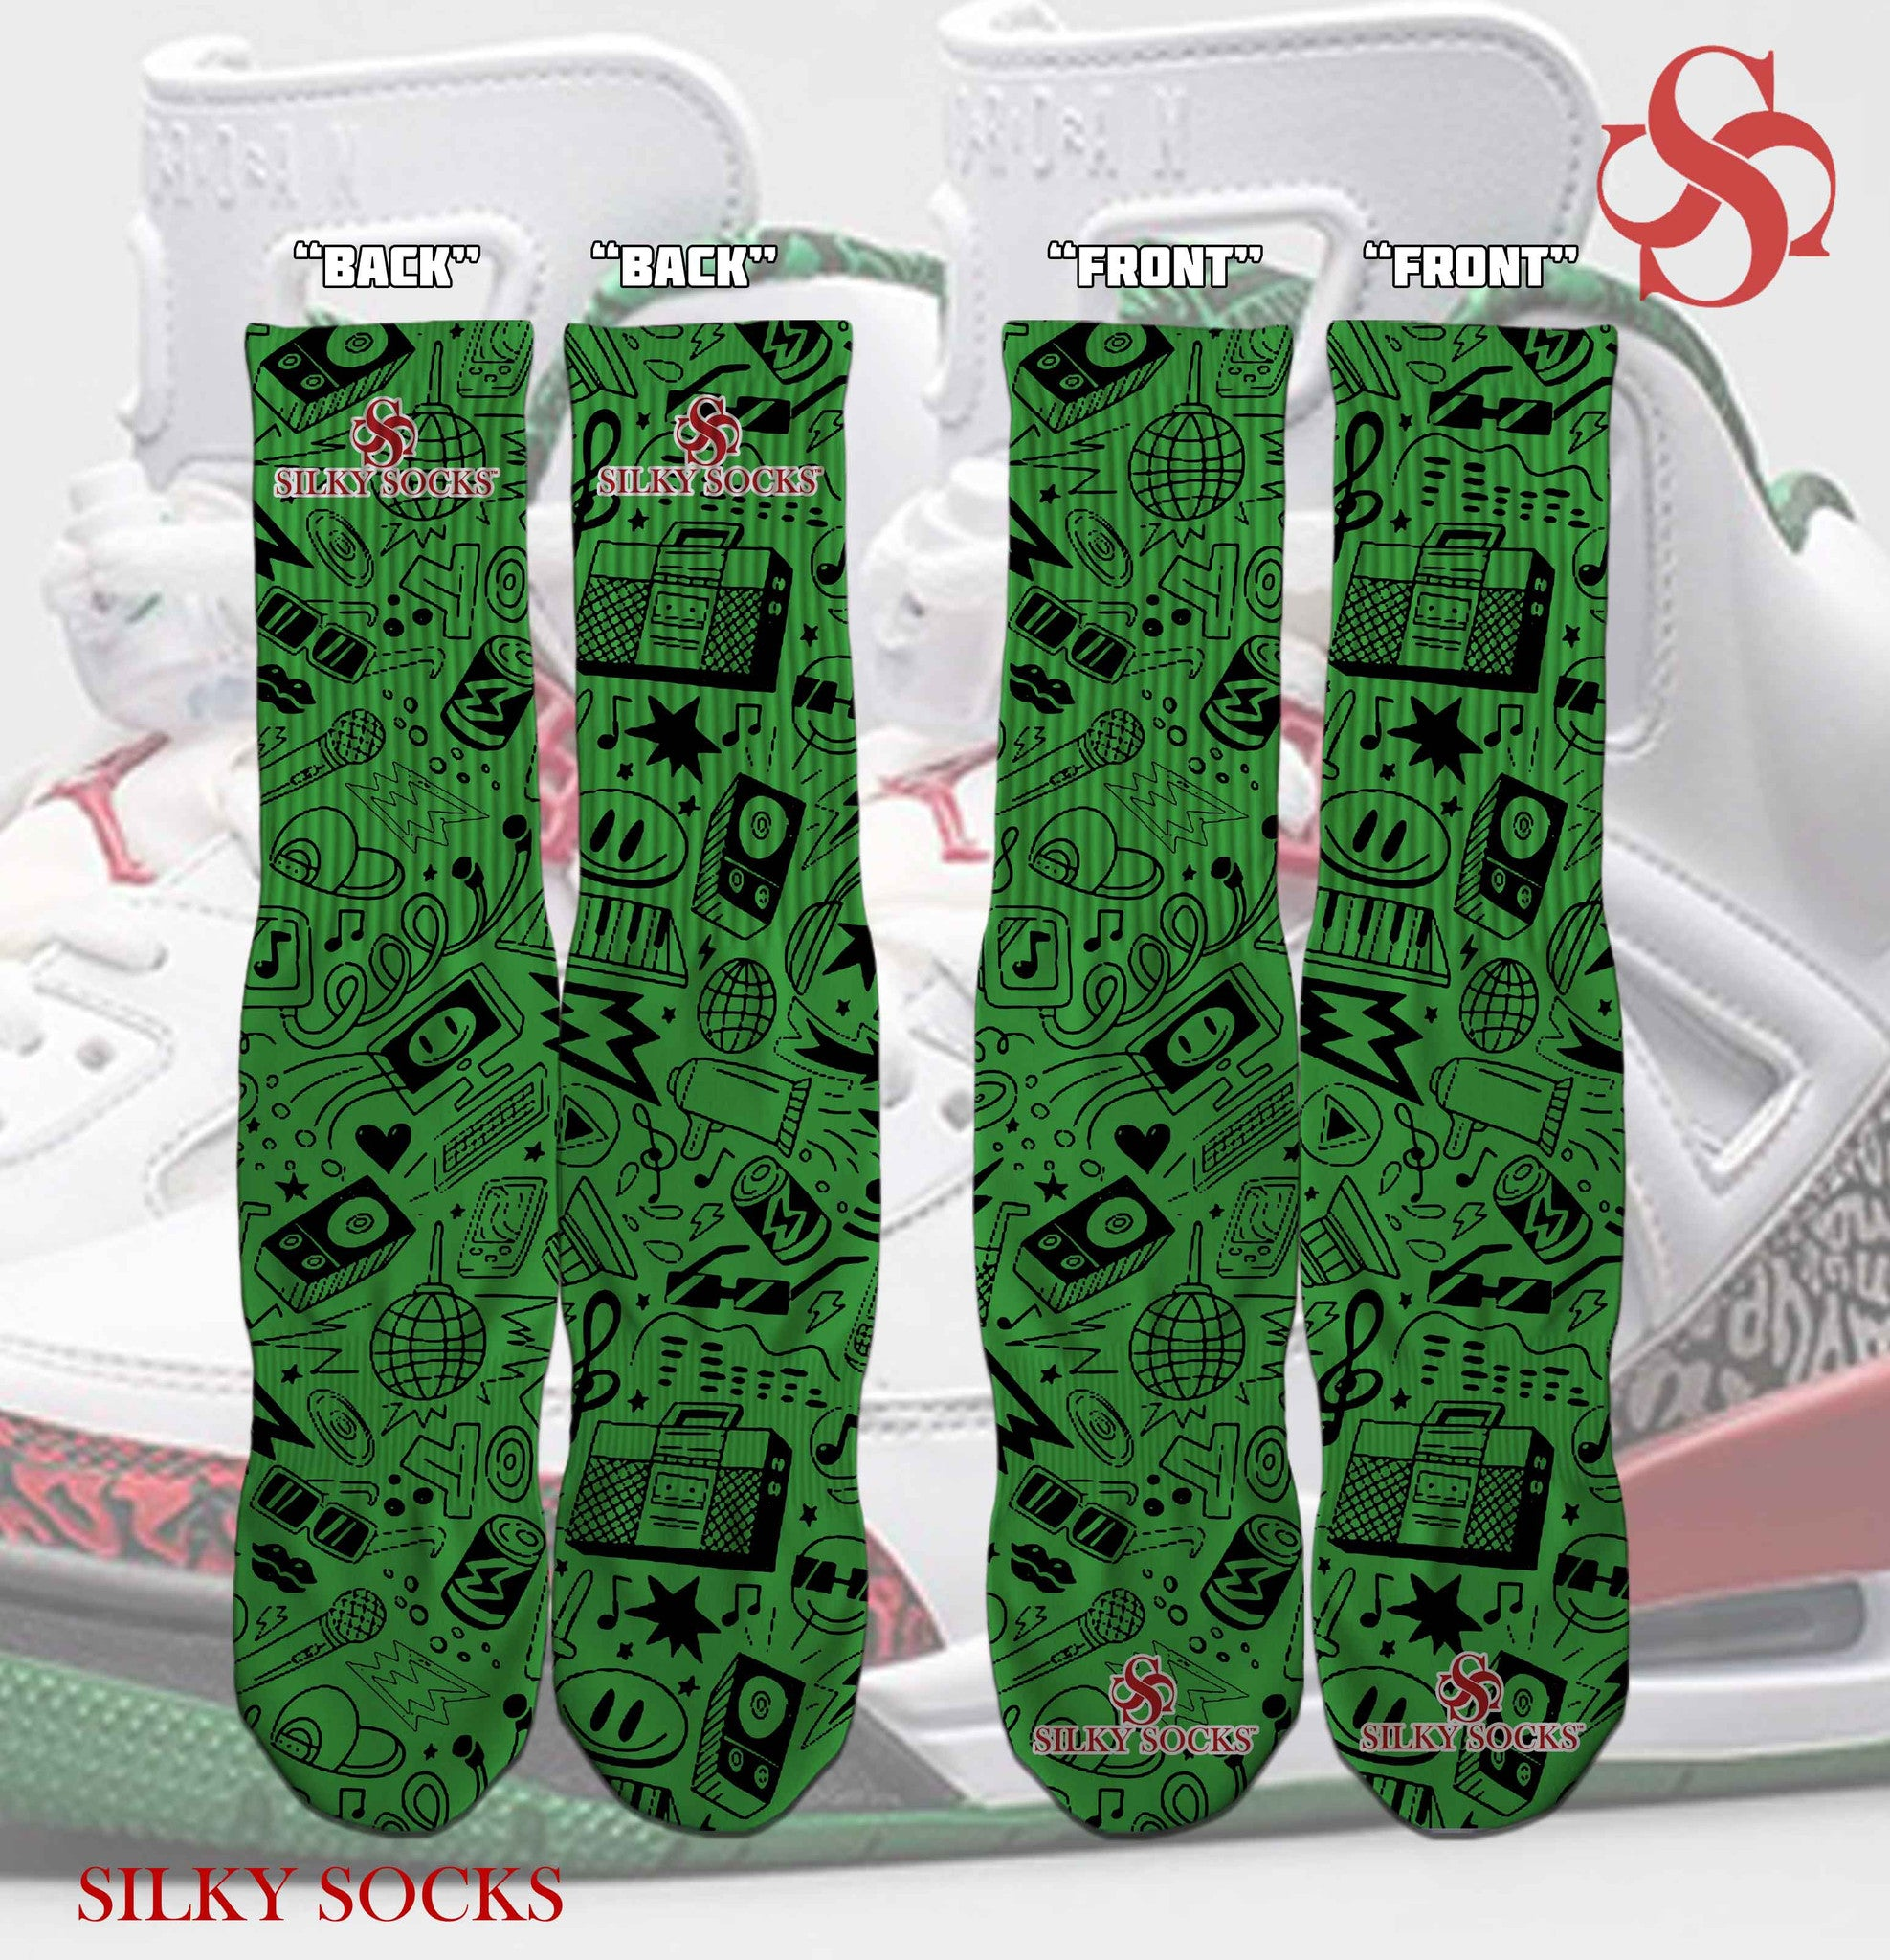 OG Spizike!! - SILKY SOCKS - official store